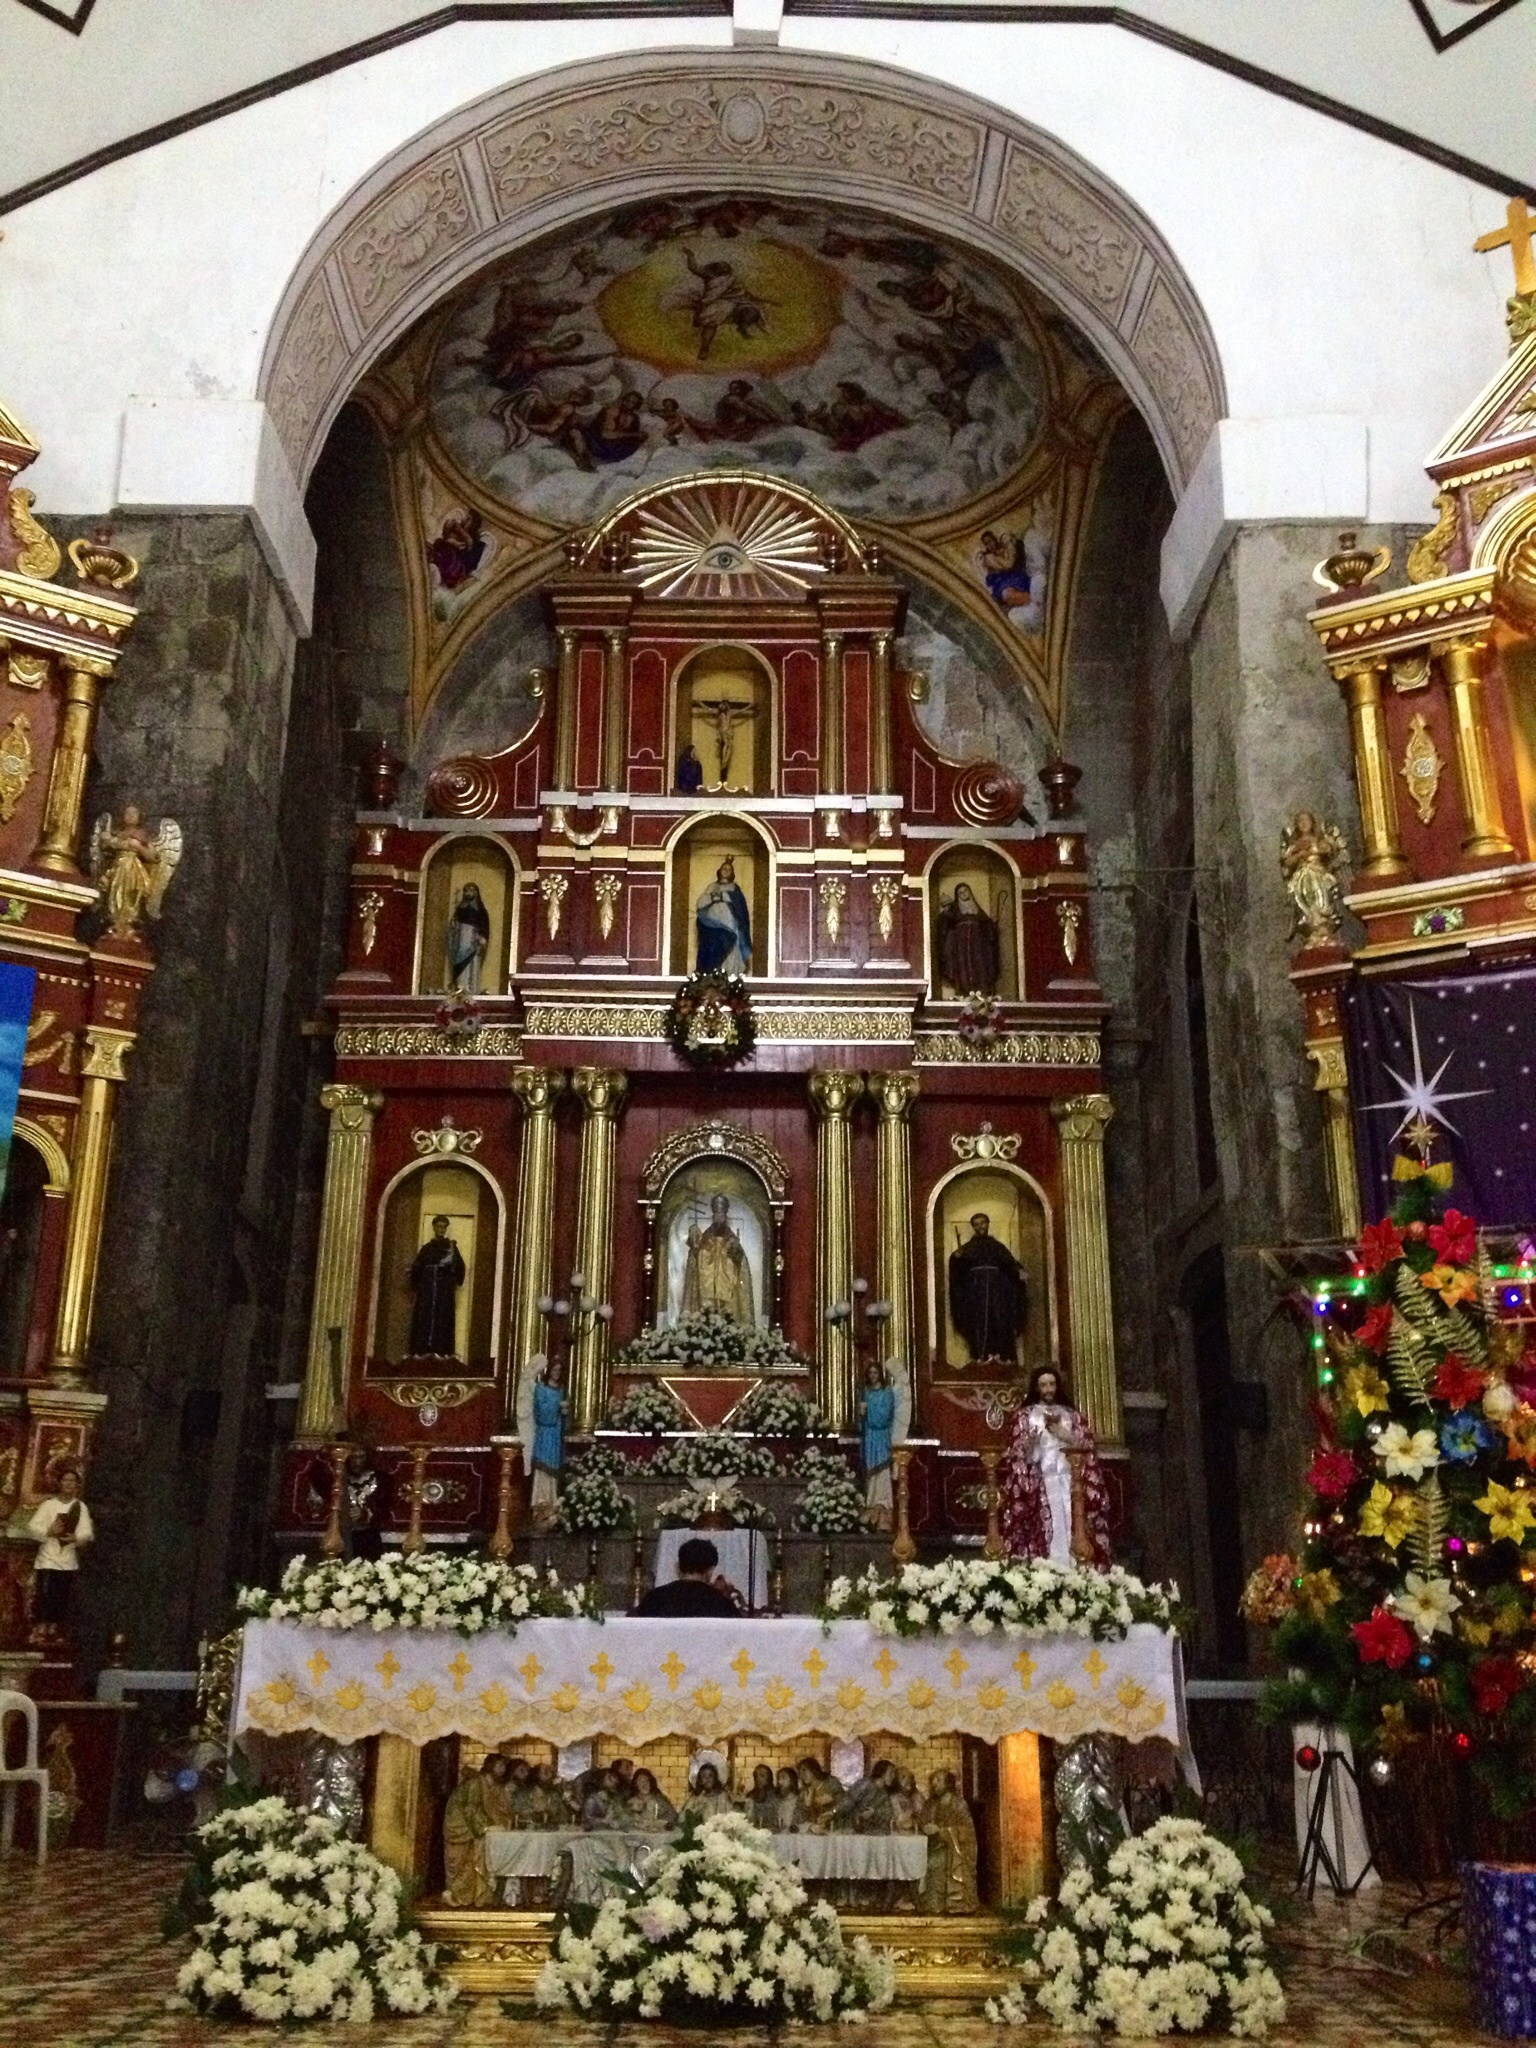 The majestic altar of Saint Gregory the Great Parish Church.